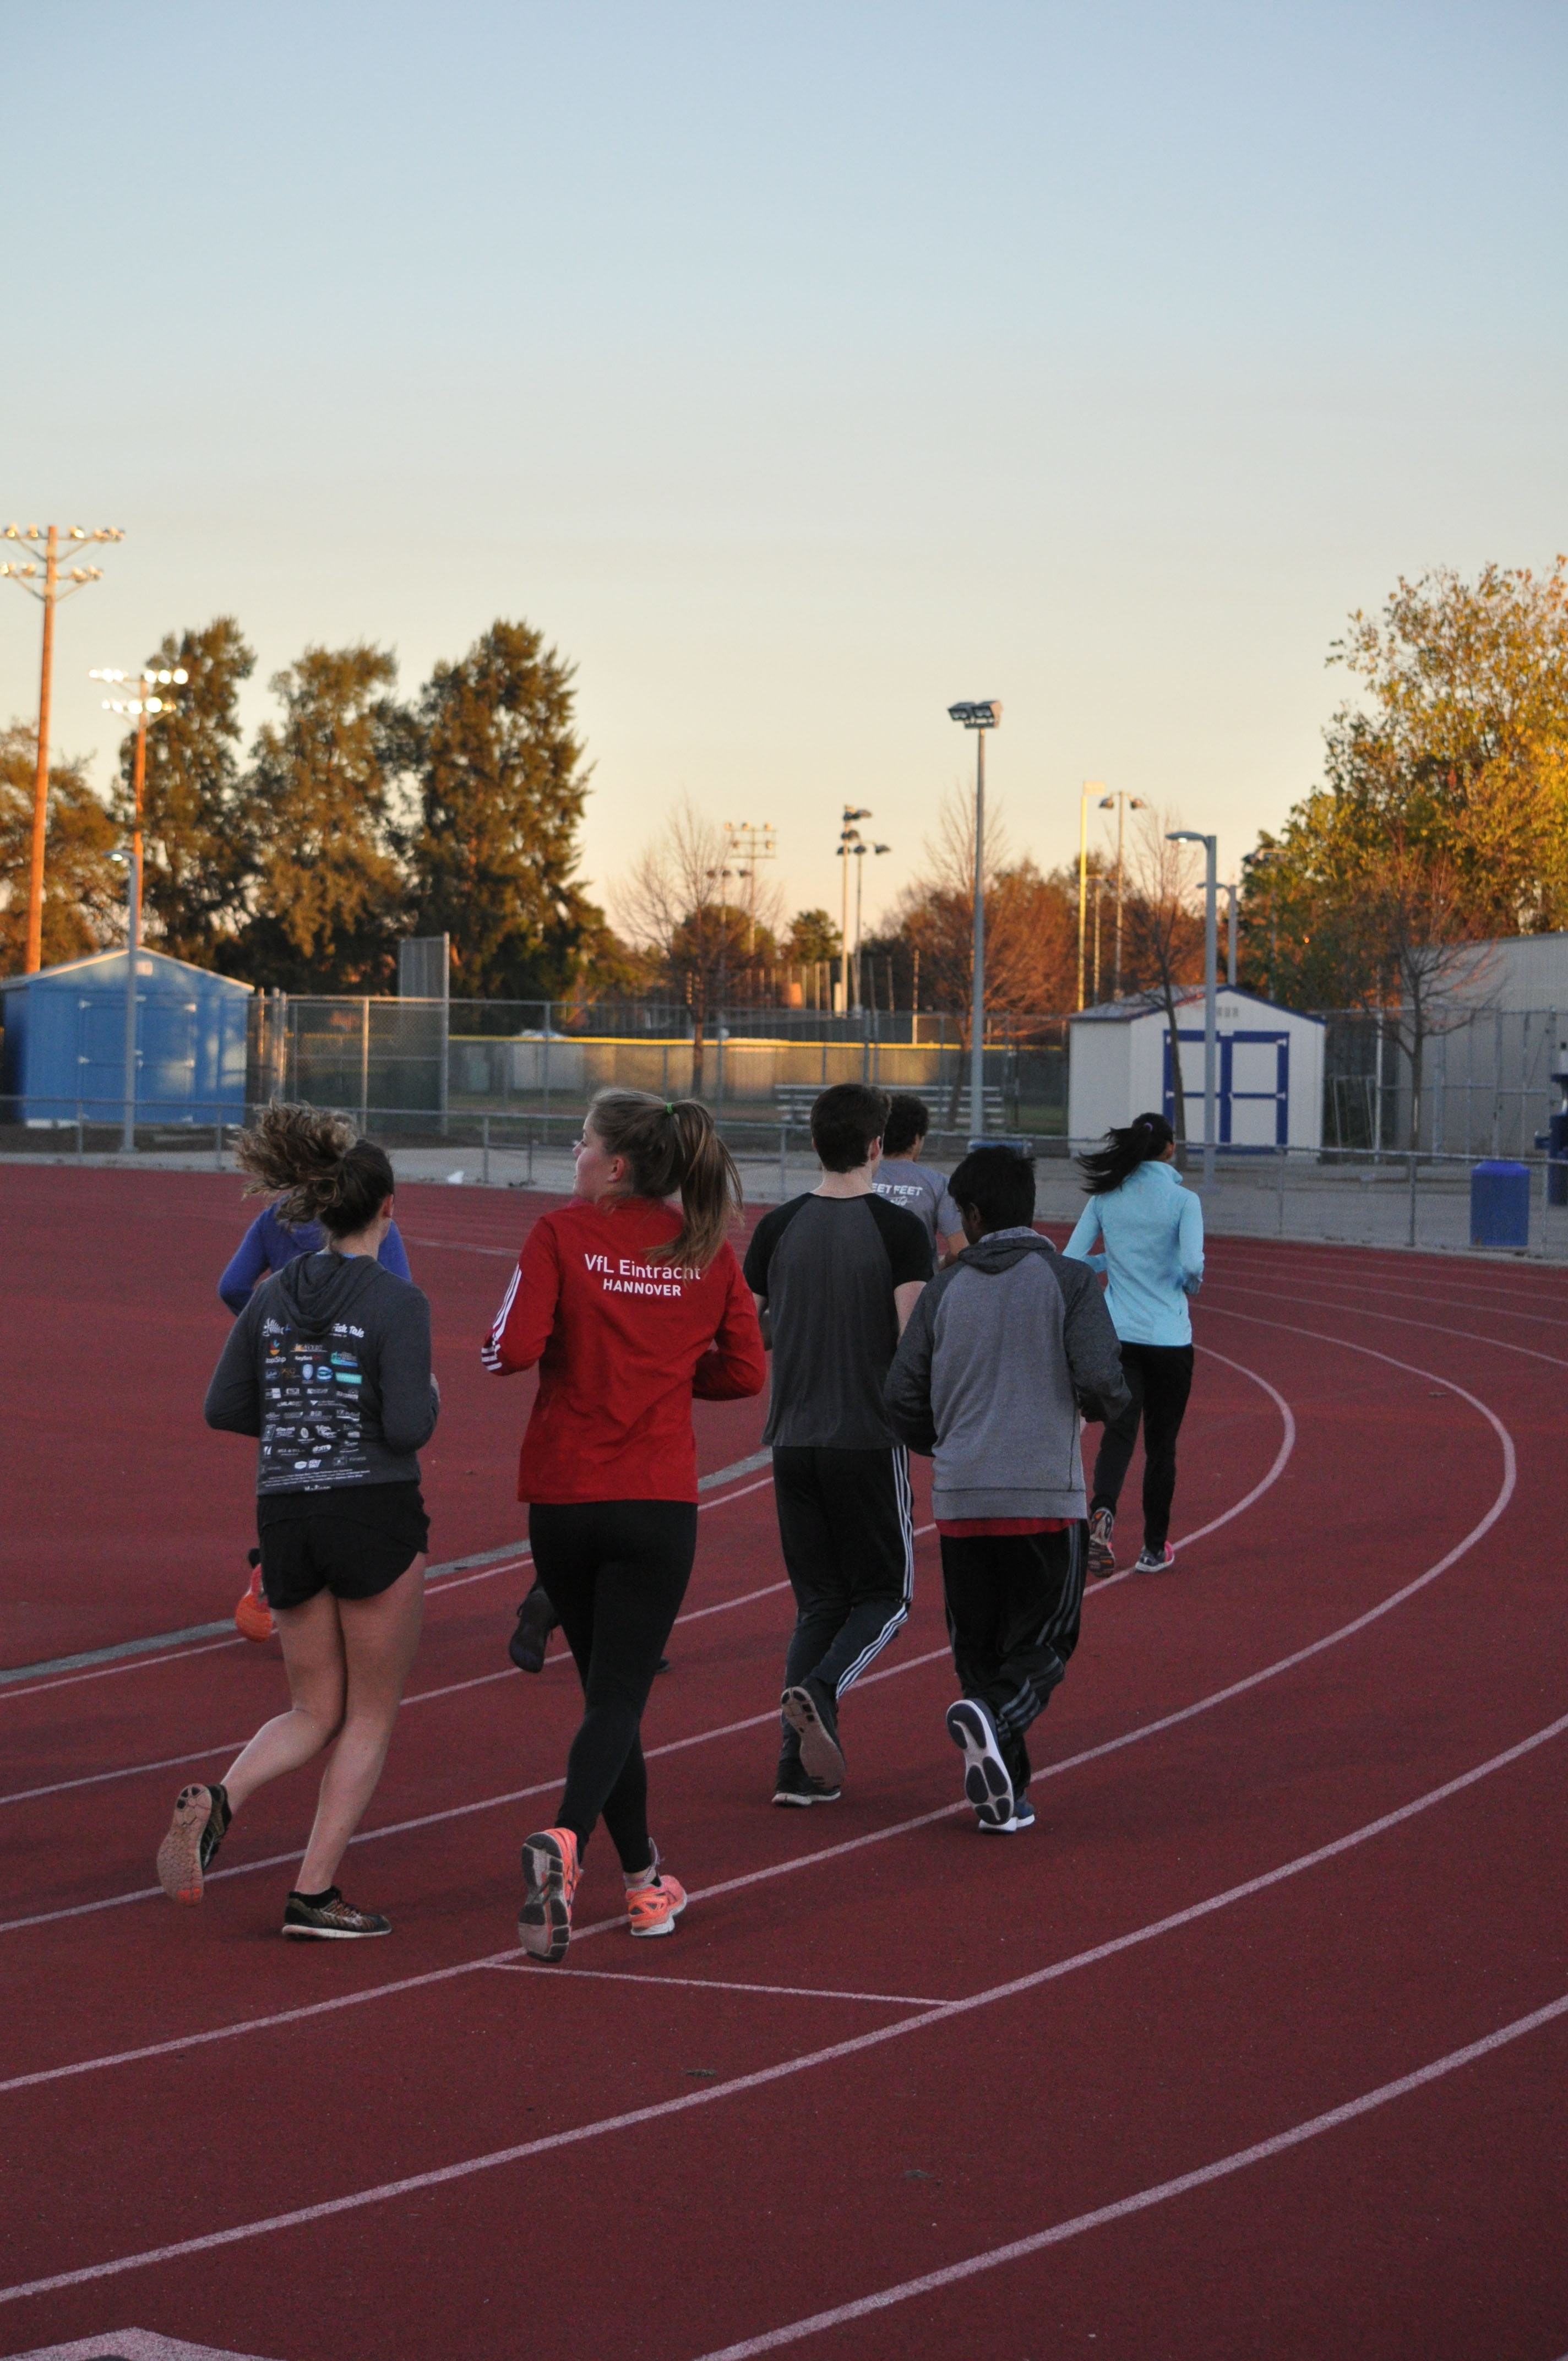 A group of runners begins a lap around the track.